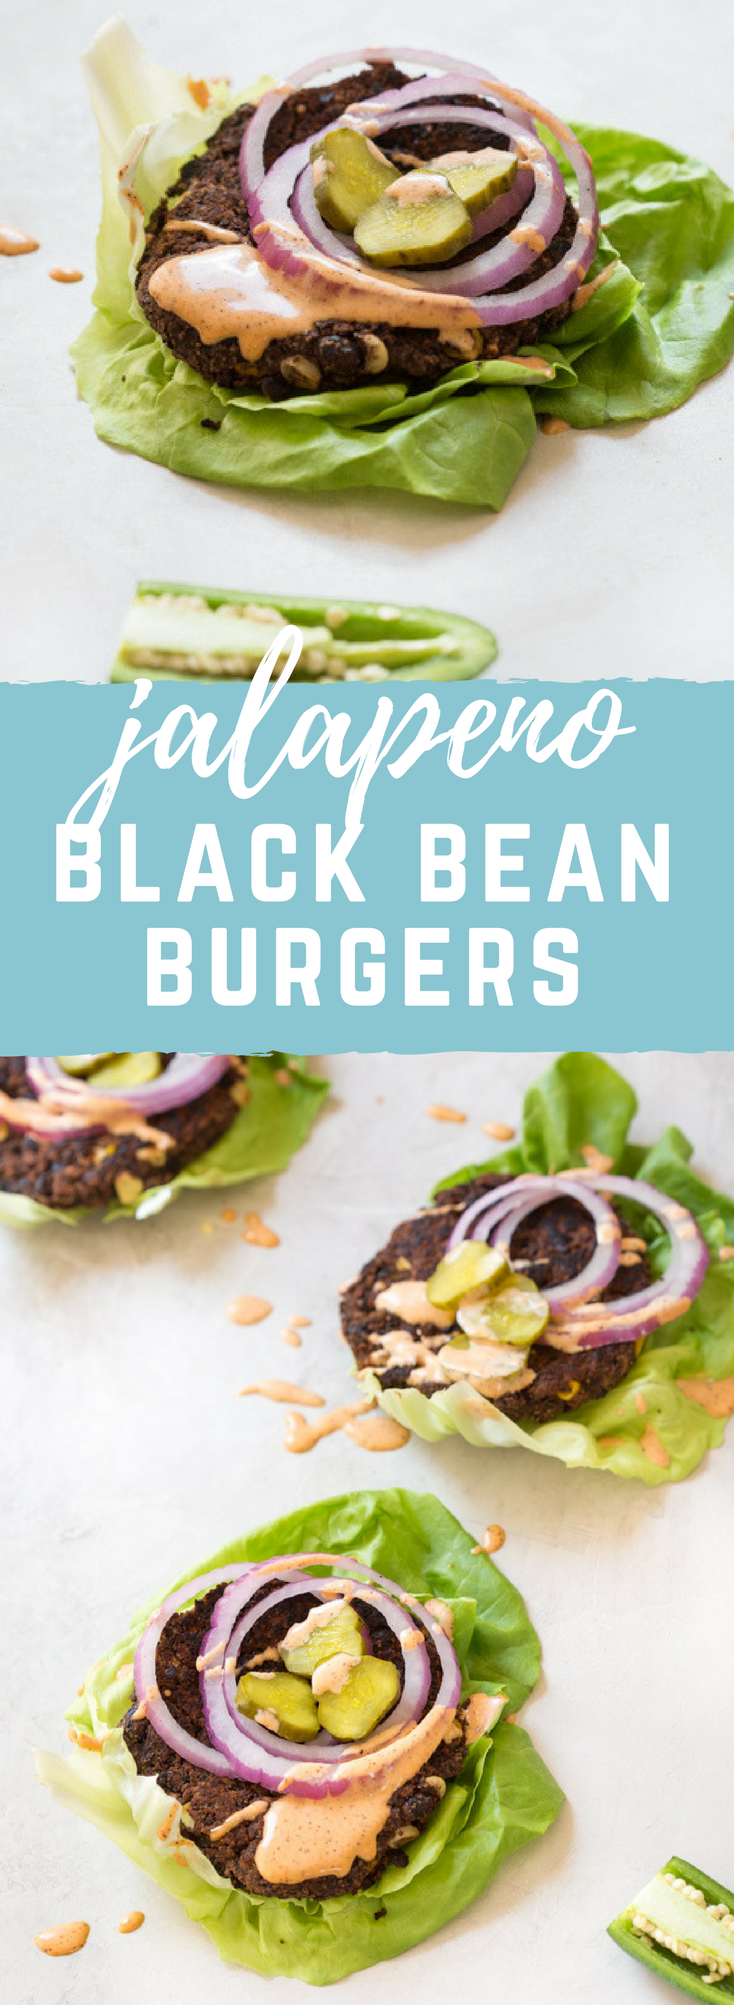 Skillet Jalapeño Black Bean Burgers... the cast iron skillet is the game changer for cooking black bean burgers especially if you're vegetarian or vegan because skillet = perfect for the grill!